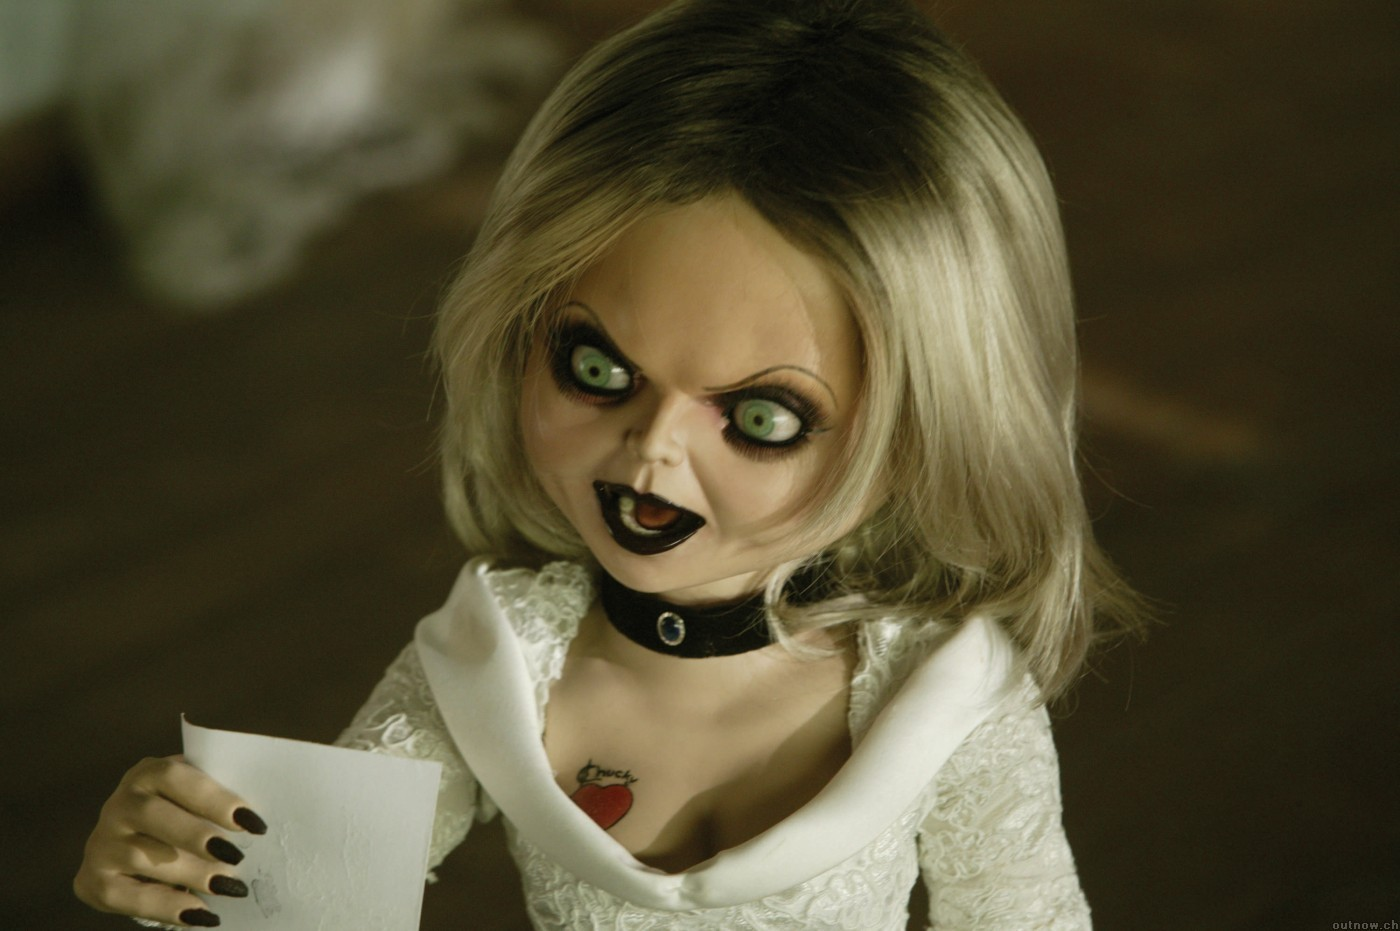 Tiffany Bride Of Chucky Quotes. QuotesGram